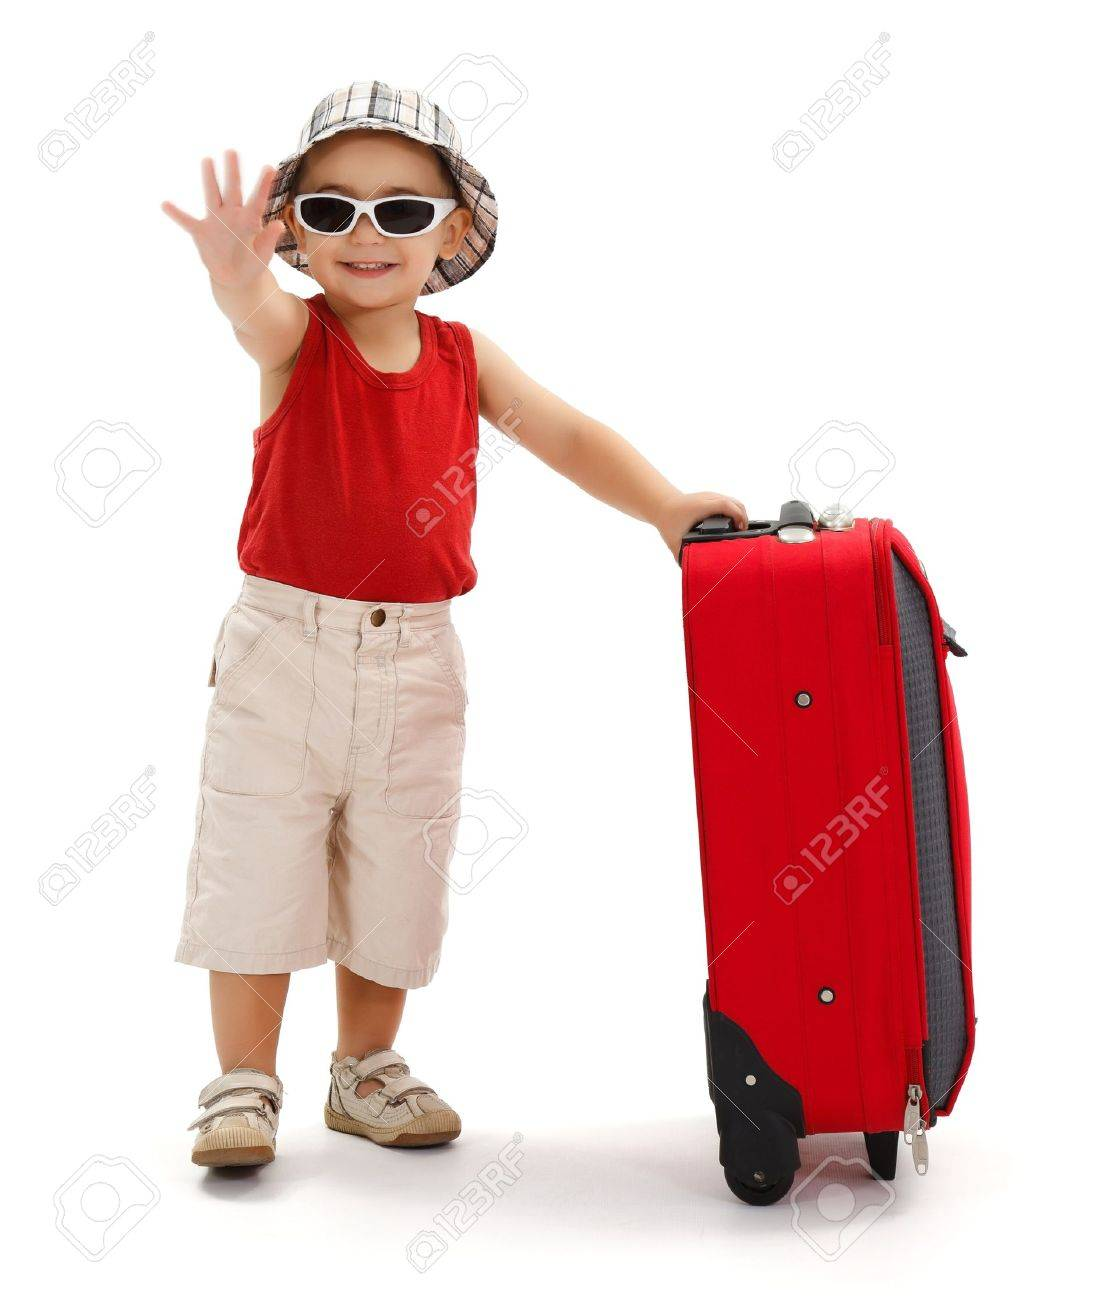 Child standing near luggage, wearing hat and sunglasses, holding his luggage and waving good bye with hand Stock Photo - 10306748